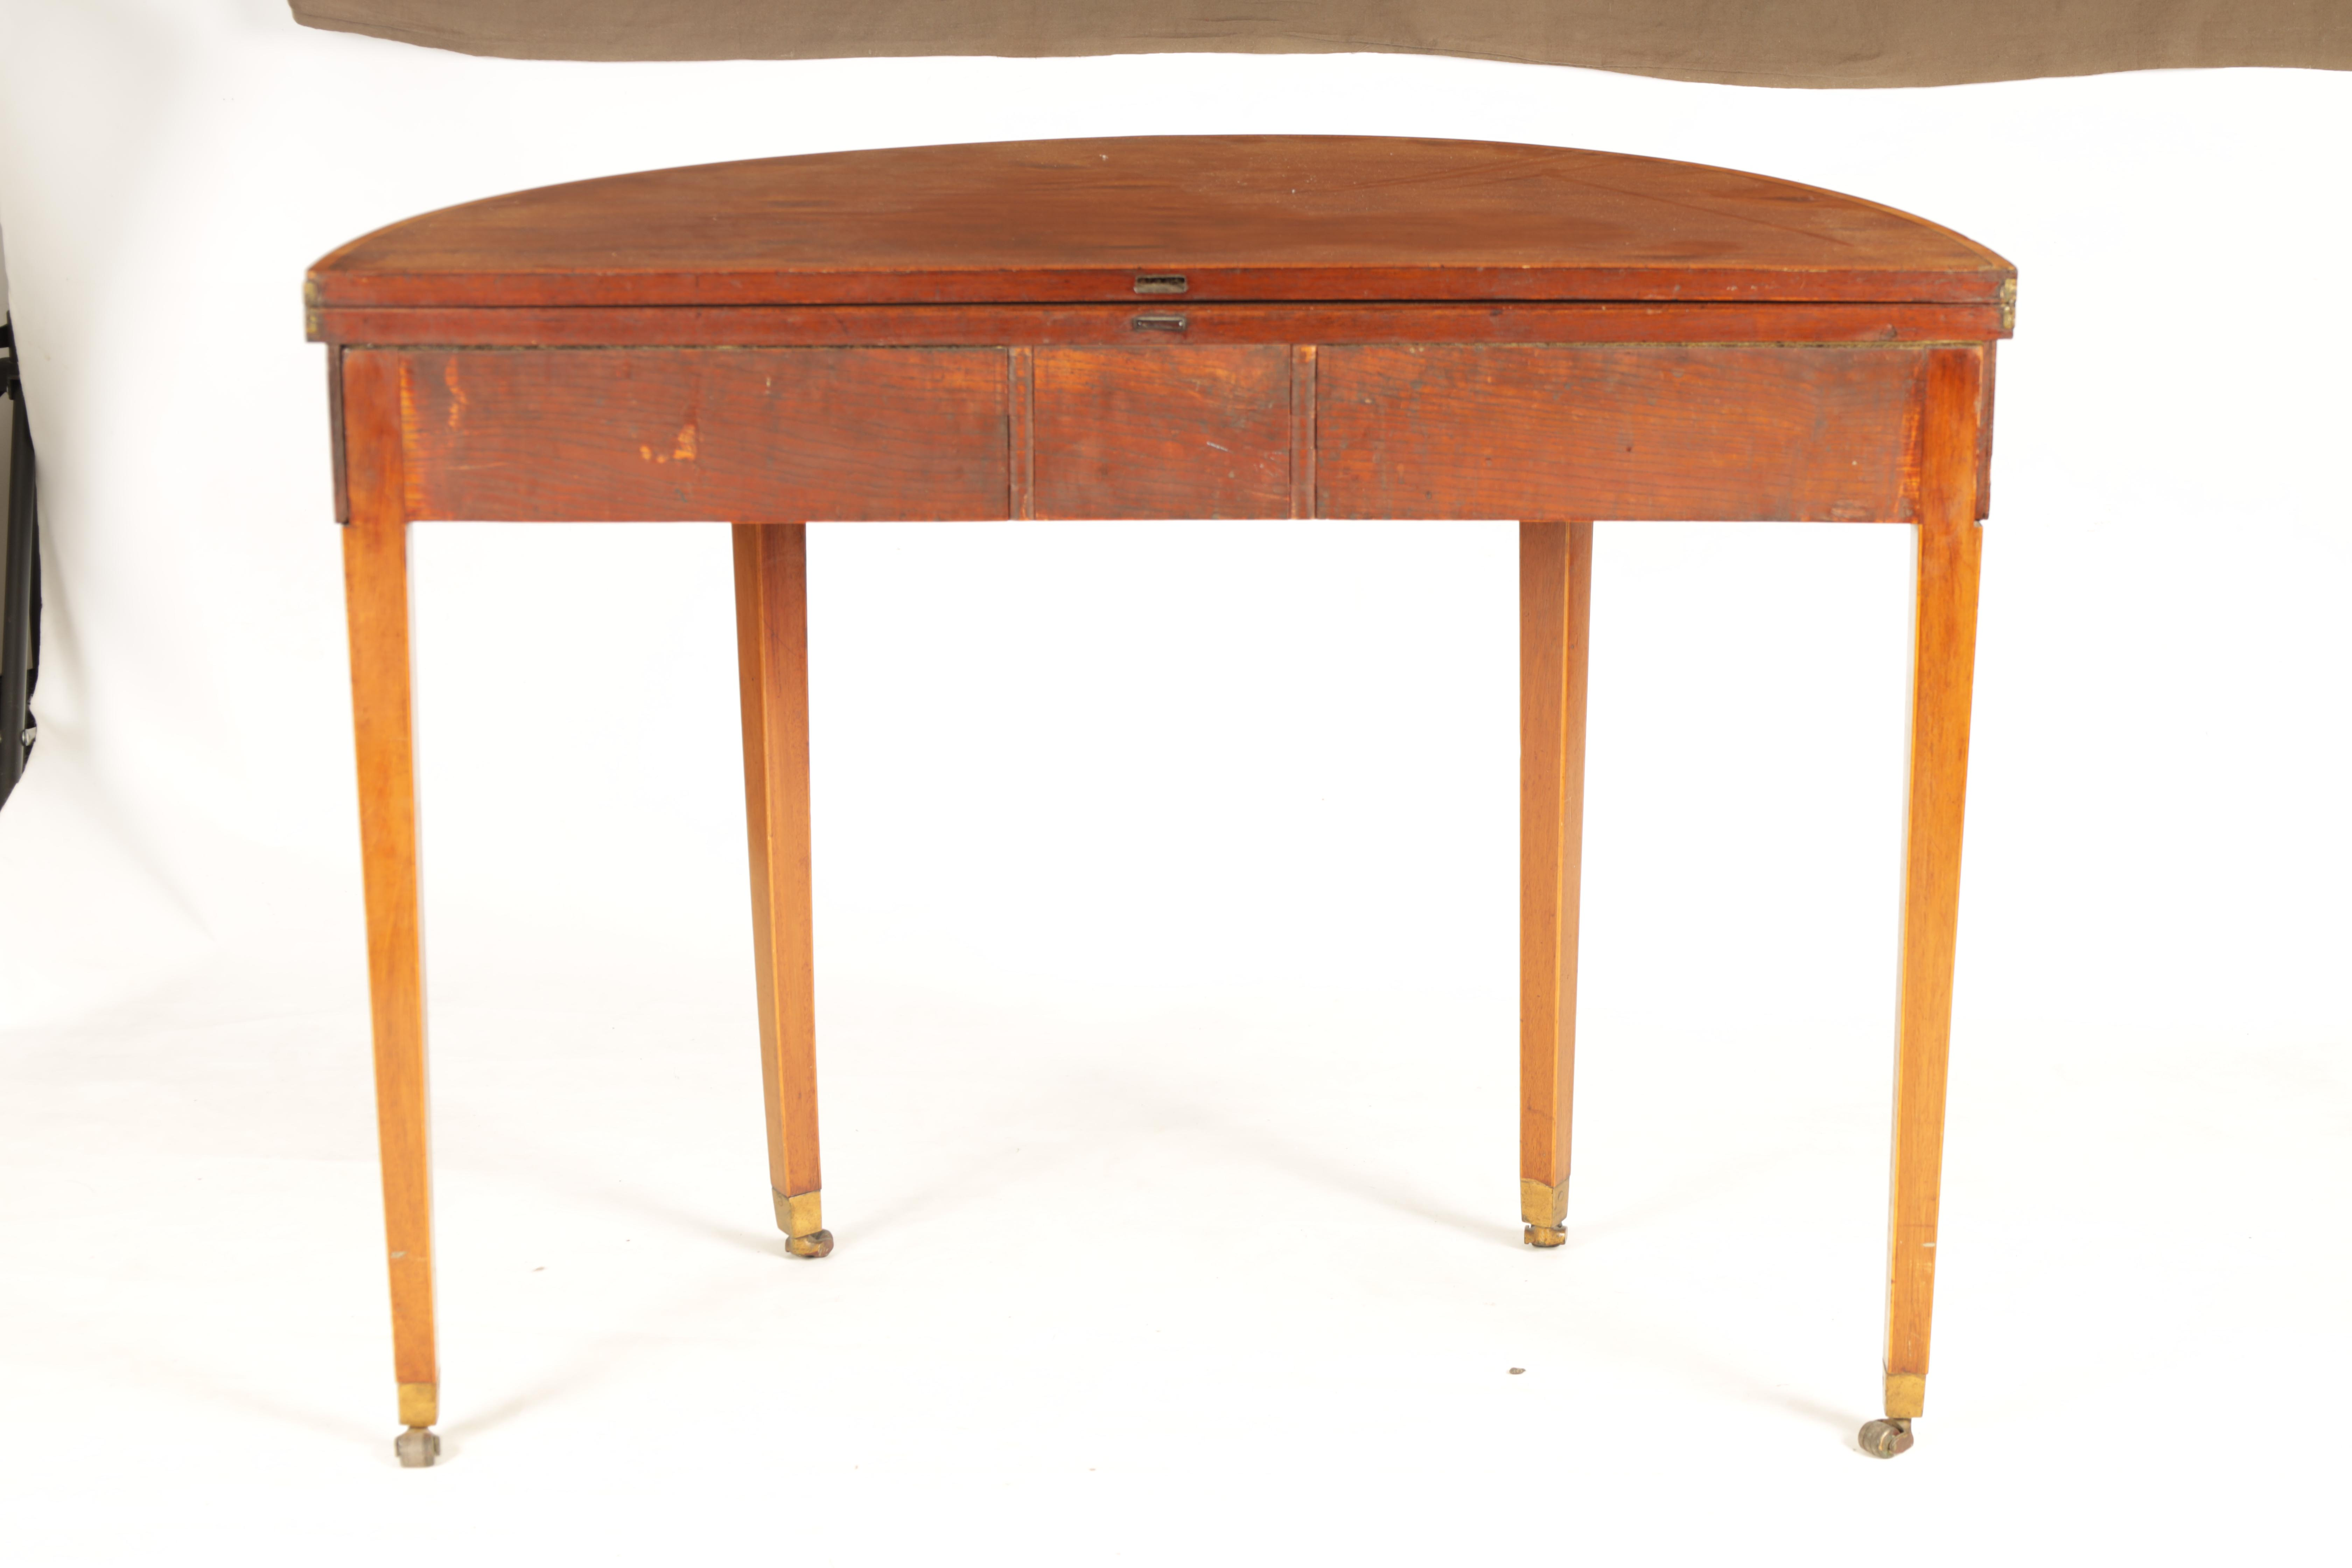 A GEORGE III FIGURED SATINWOOD D END TEA TABLE with hinged top and double gate rear legs; standing - Image 8 of 8